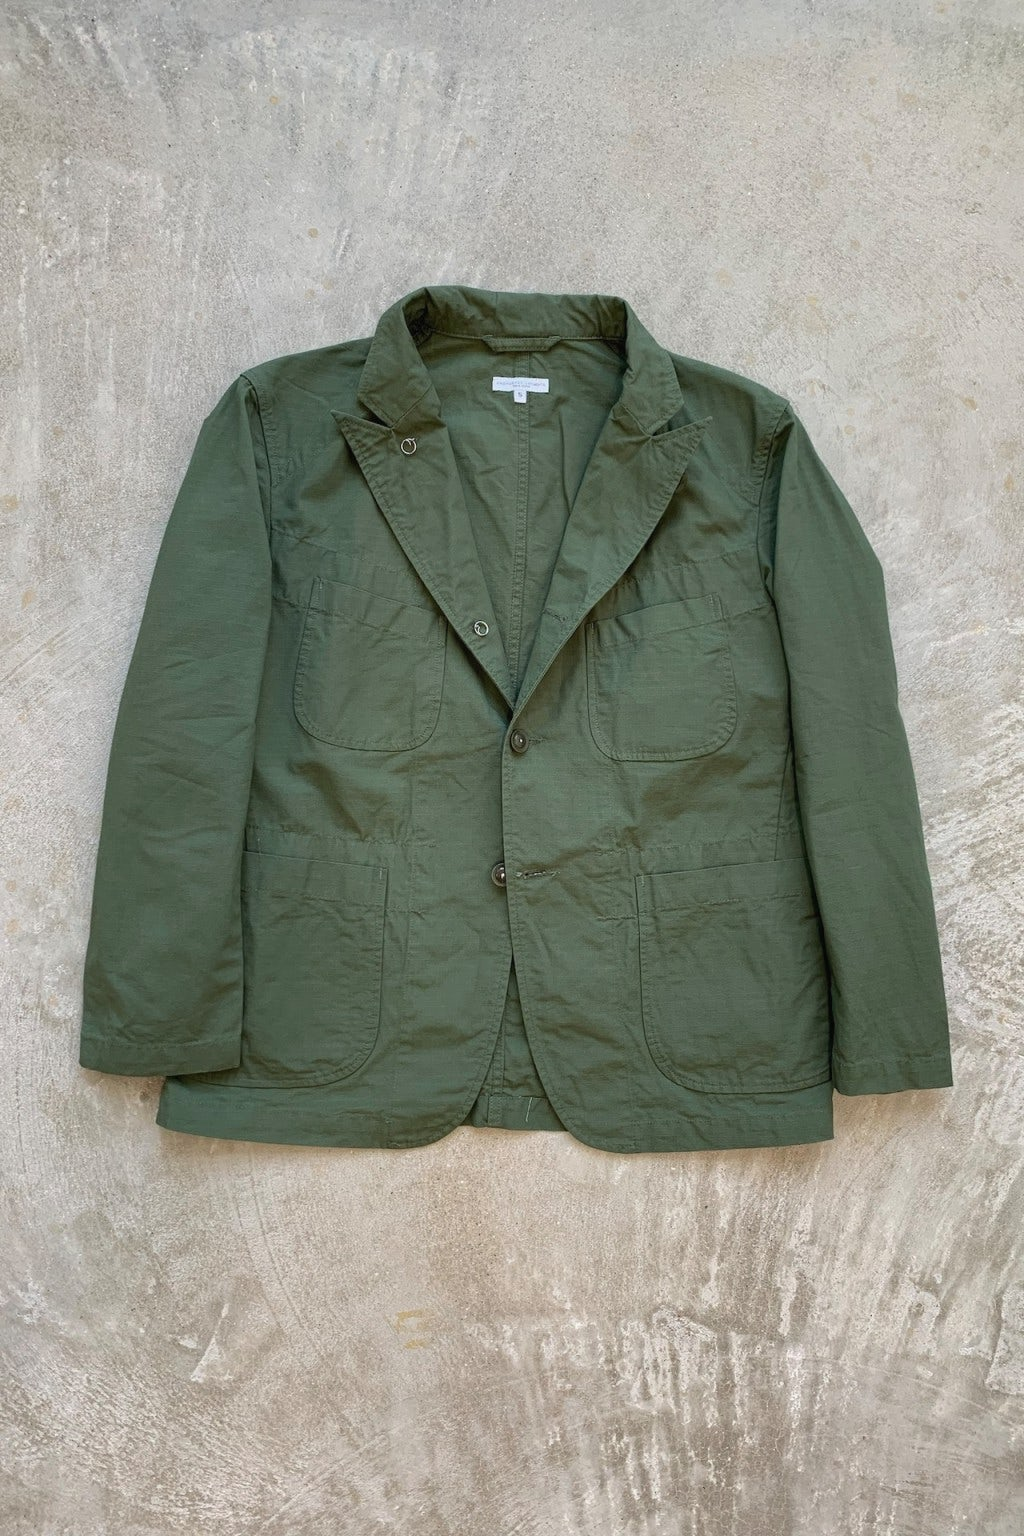 Engineered Garments Bedford Jacket Olive Cotton Ripstop